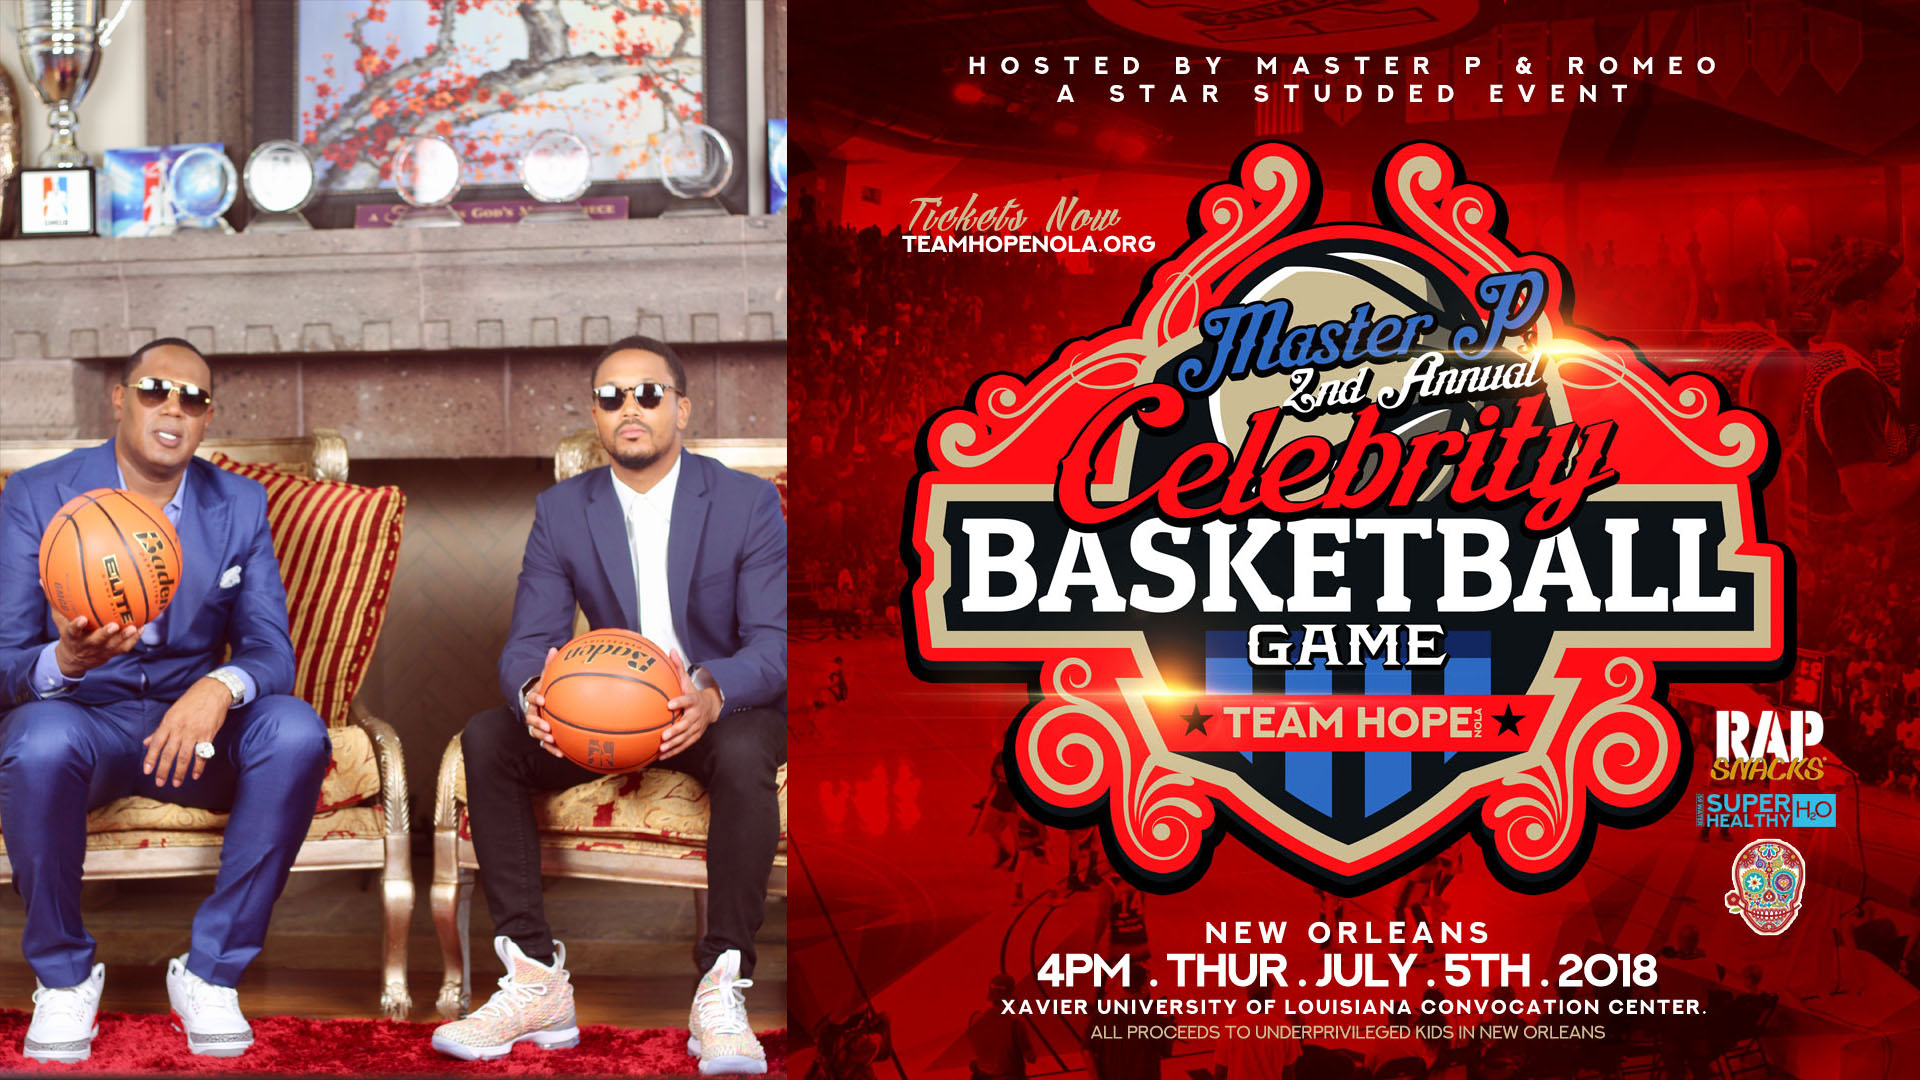 MASTER P AND ROMEO STAR STUDDED 2ND CELEBRITY BASKETBALL GAME JULY 5th